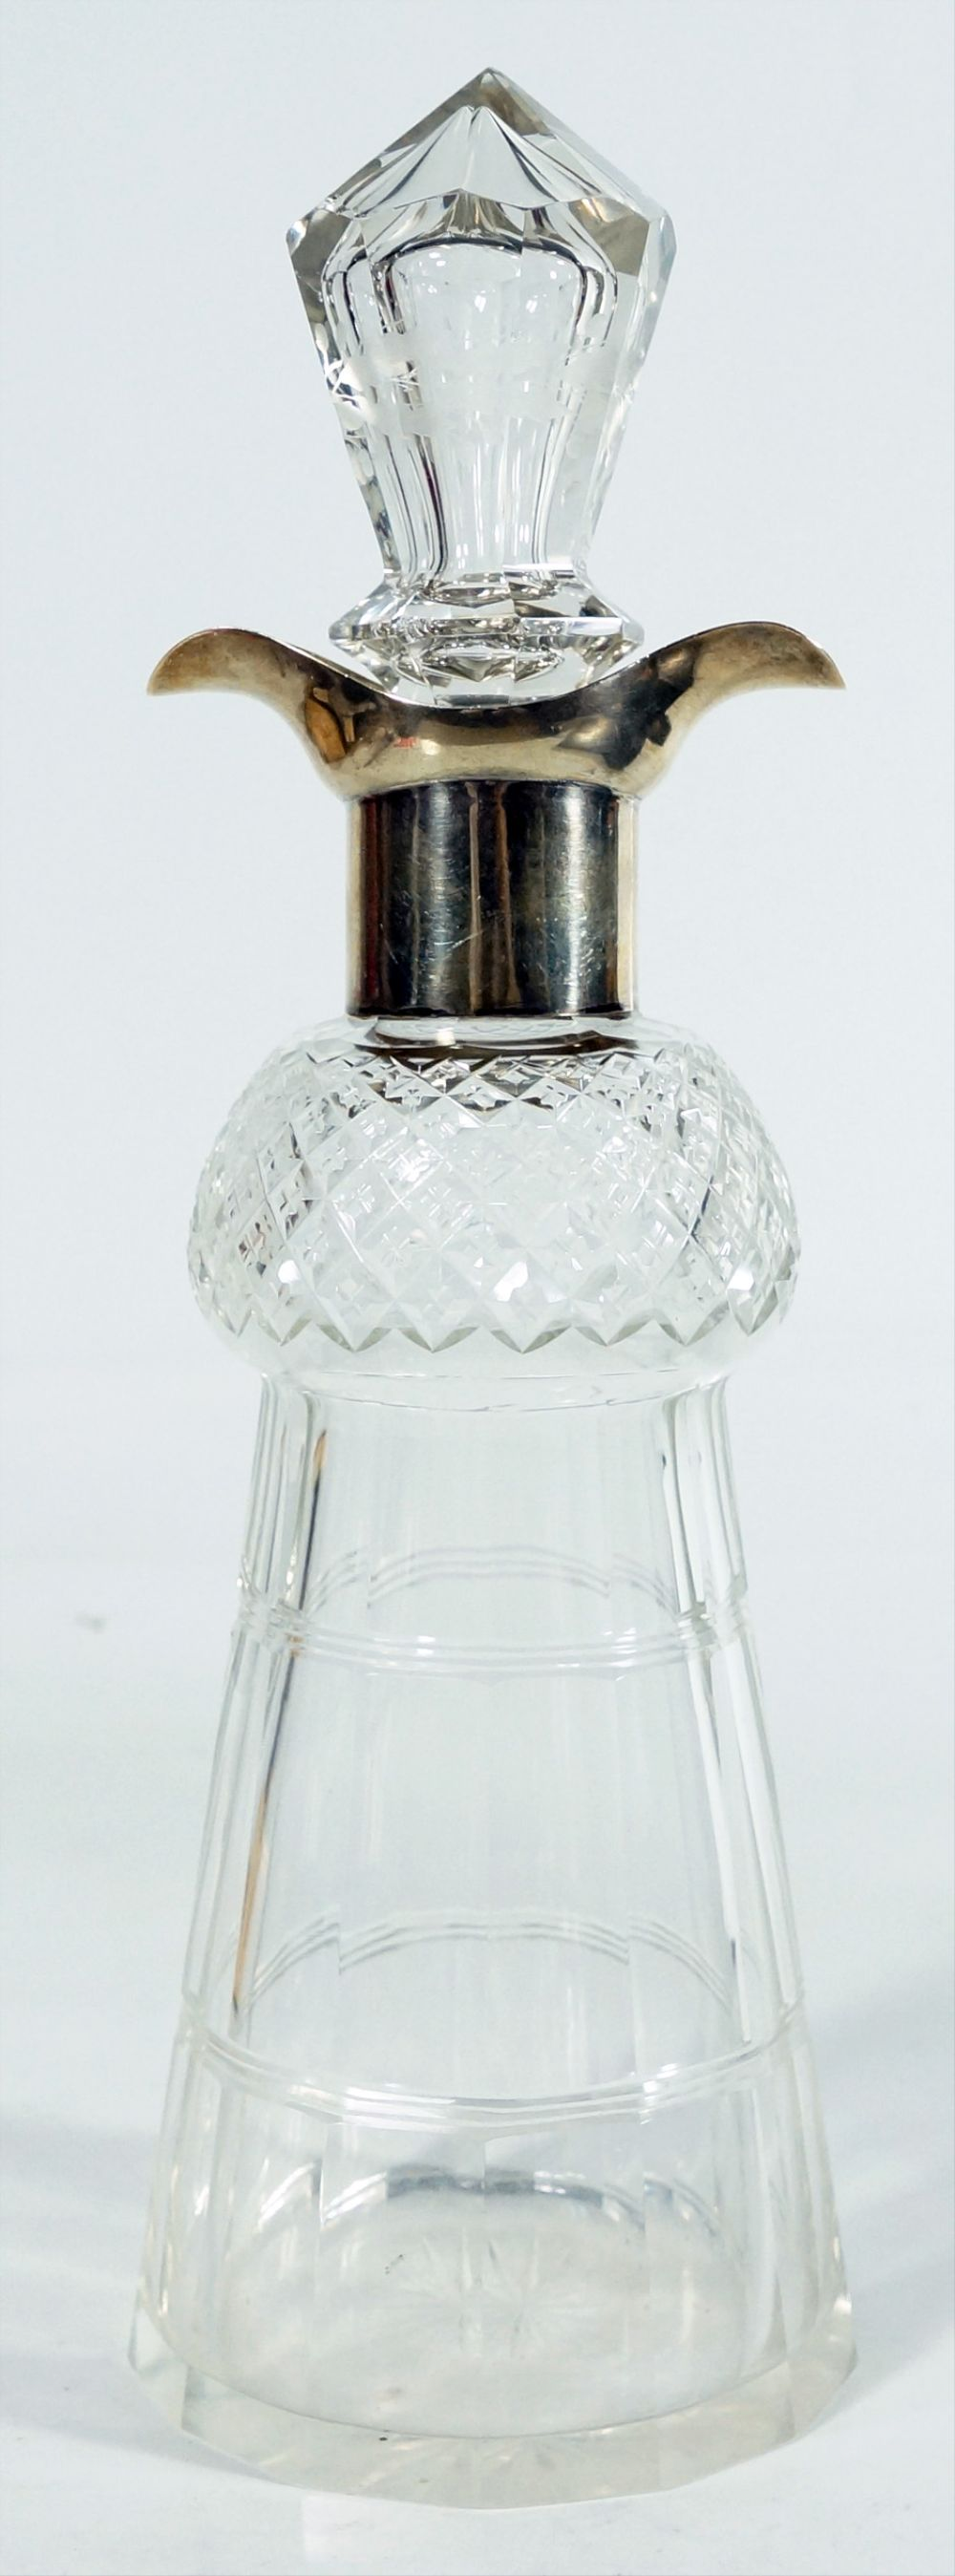 English Silver And Cut Glass Decanter